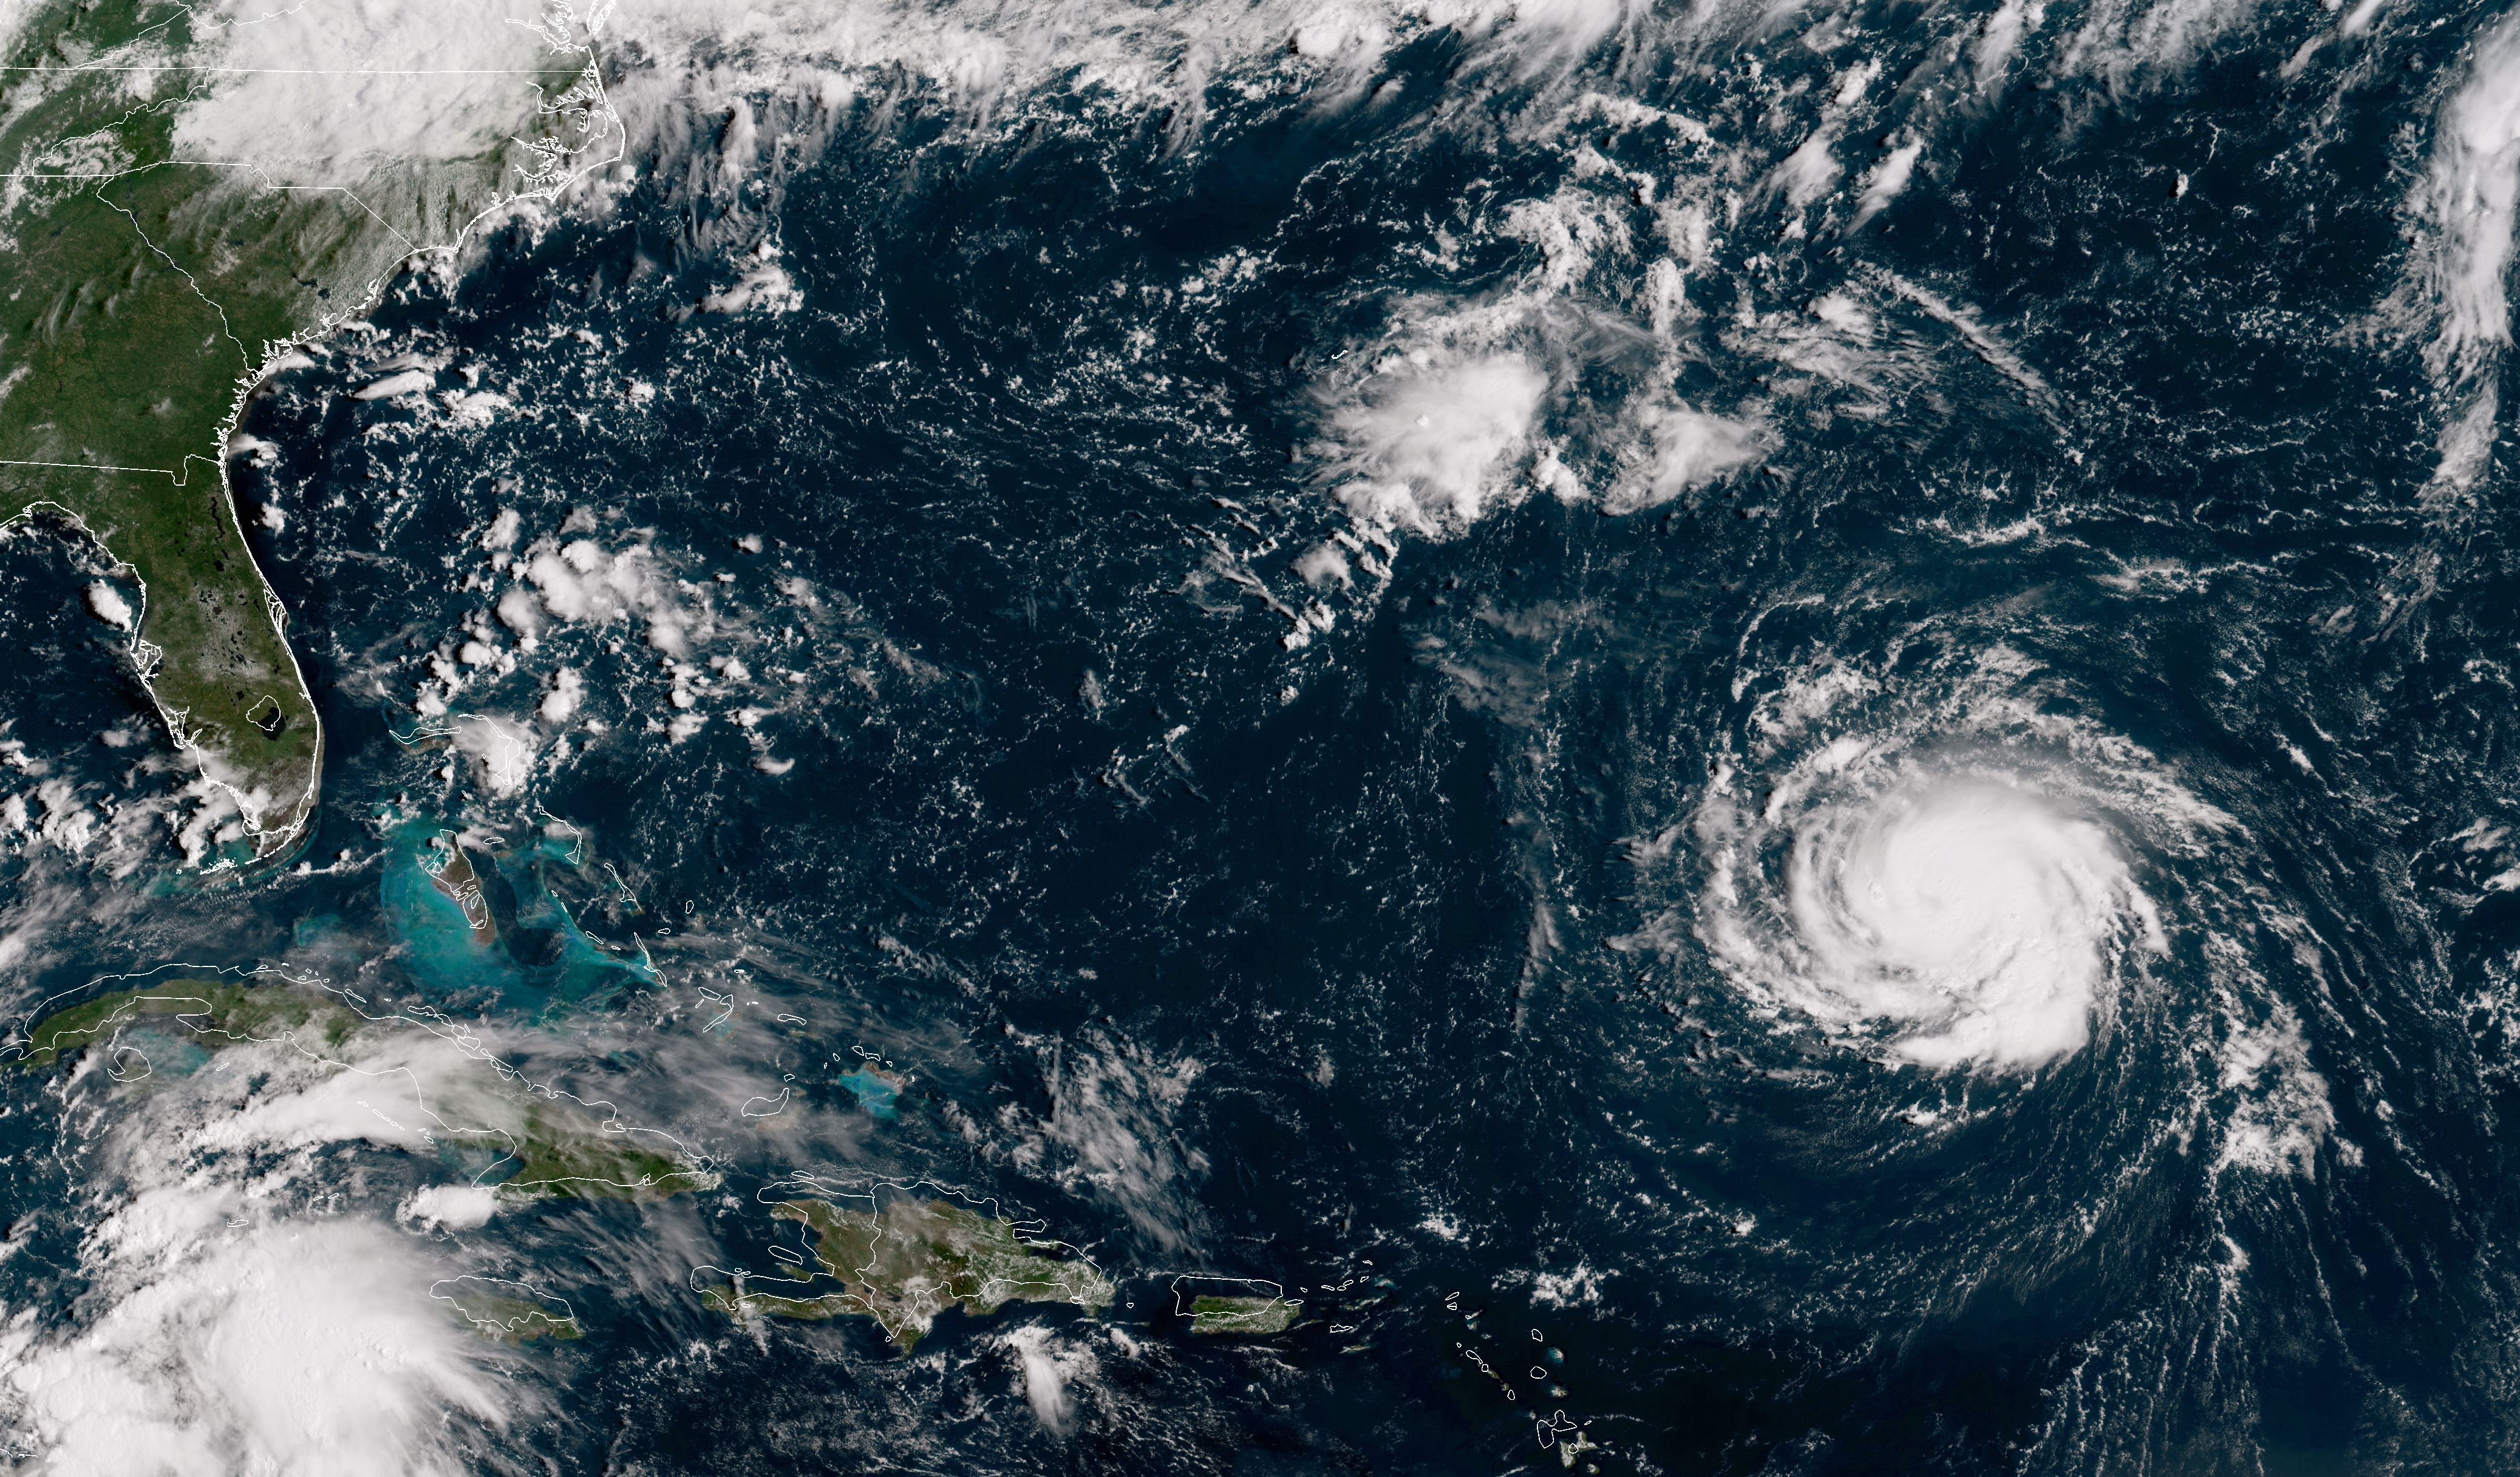 In this NOAA satellite handout image, shows Hurricane Florence as it travels west and gains strength in the Atlantic Ocean southeast of Bermuda on September 10, 2018. Weather predictions say the storm will likely hit the U.S. East Coast as early as Thursday, September 13 bringing massive winds and rain.